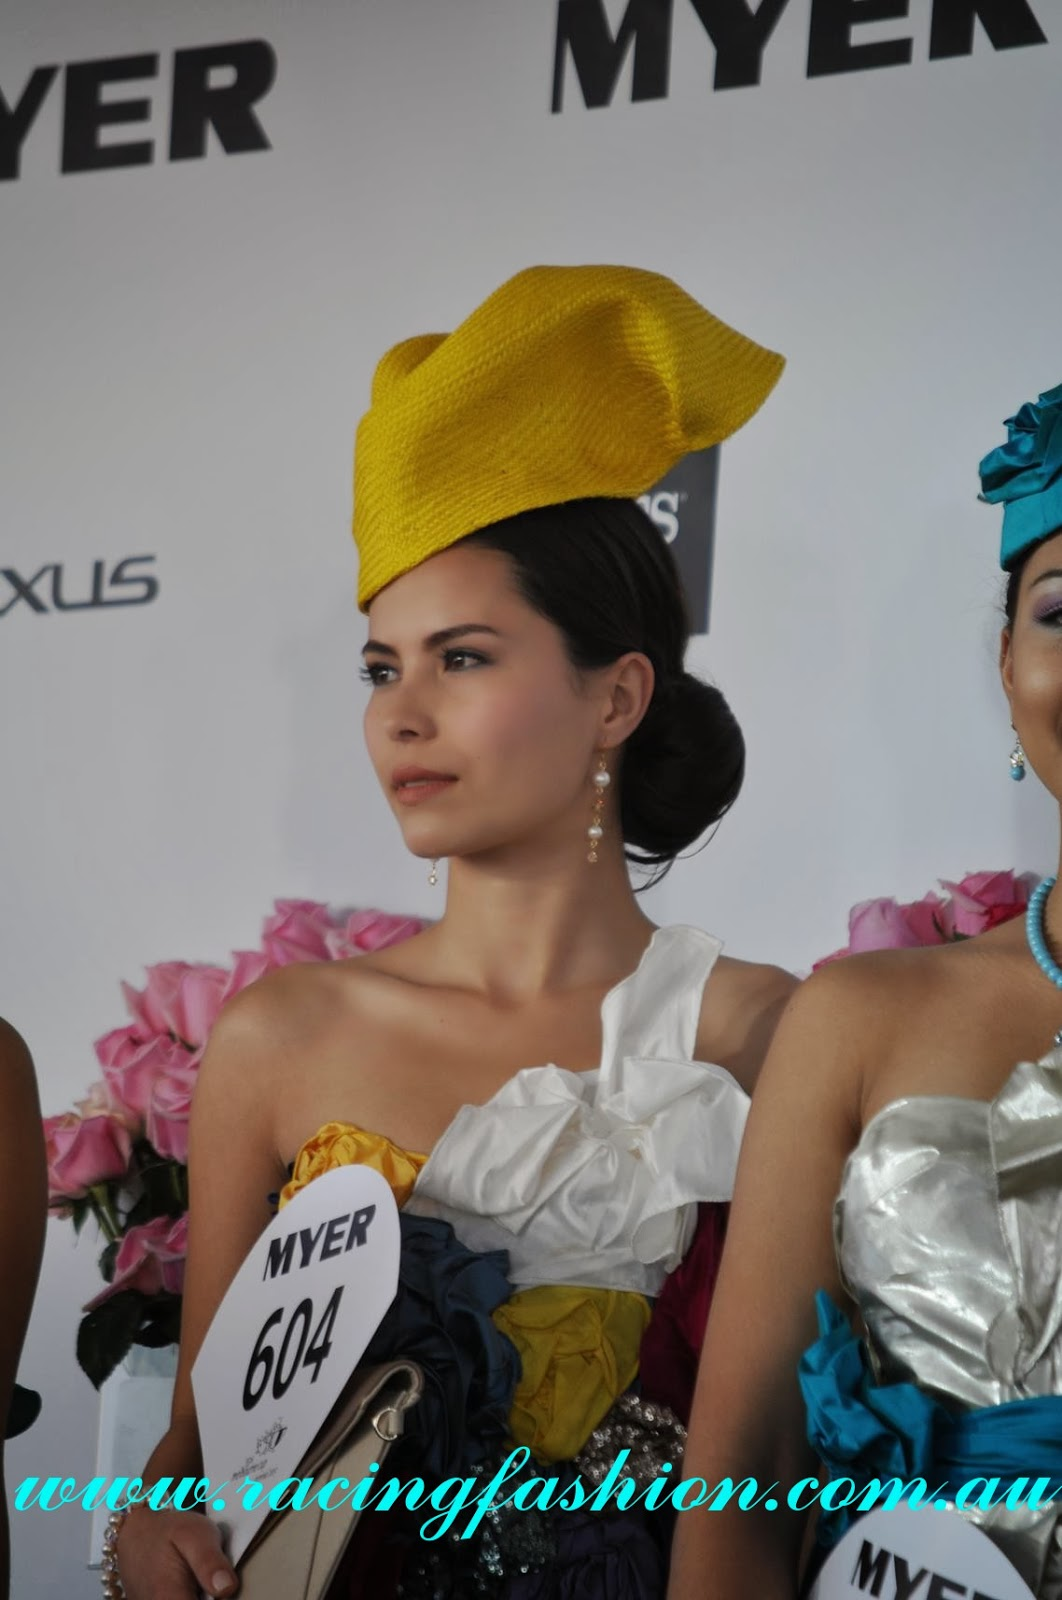 Melbourne Cup 2018 Fashion Tips, Dresses Hats - Punters 73